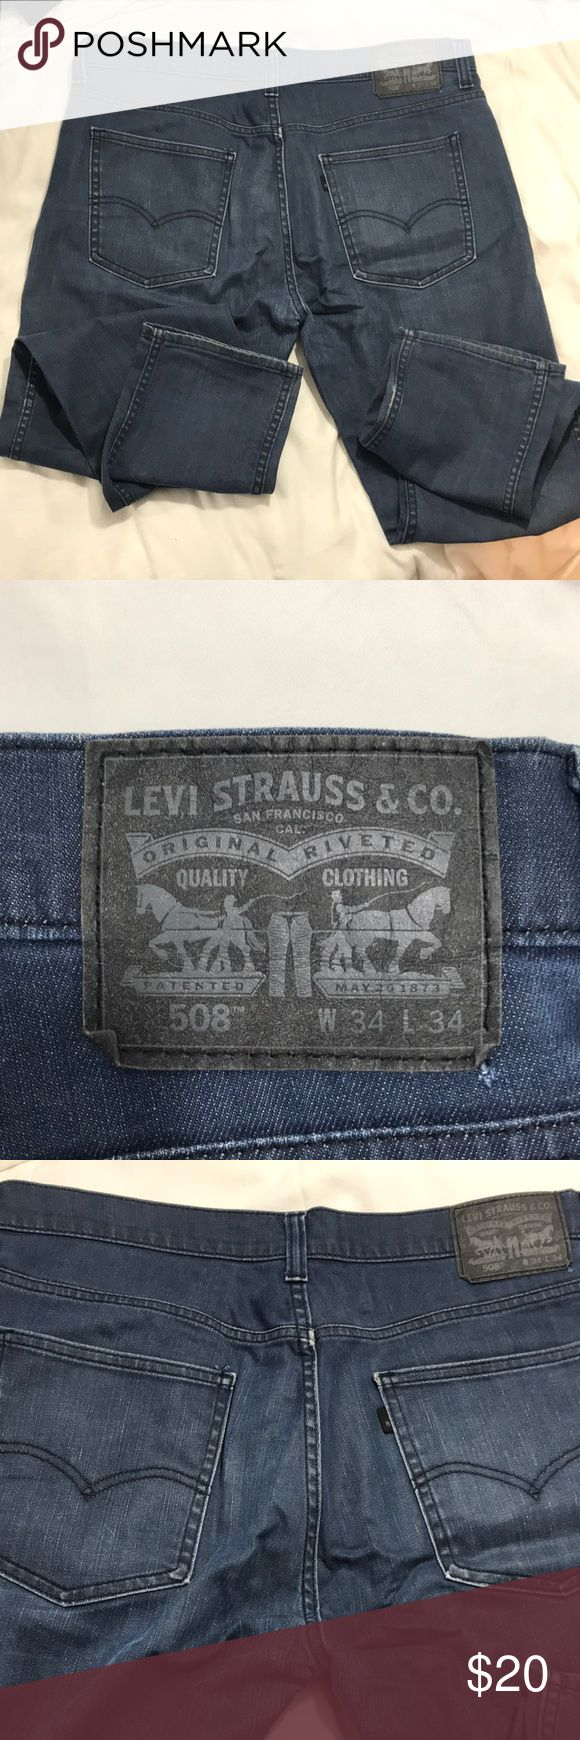 Men's Levi 508 Jeans Blue Levi's 34x34 Selling a pair of men's used to Levi jeans size 34 x 34. Good condition with light fading around some small areas. Can't even tell what looks like part of the jeans Design. Please see photos of her bedding. Levi's Jeans